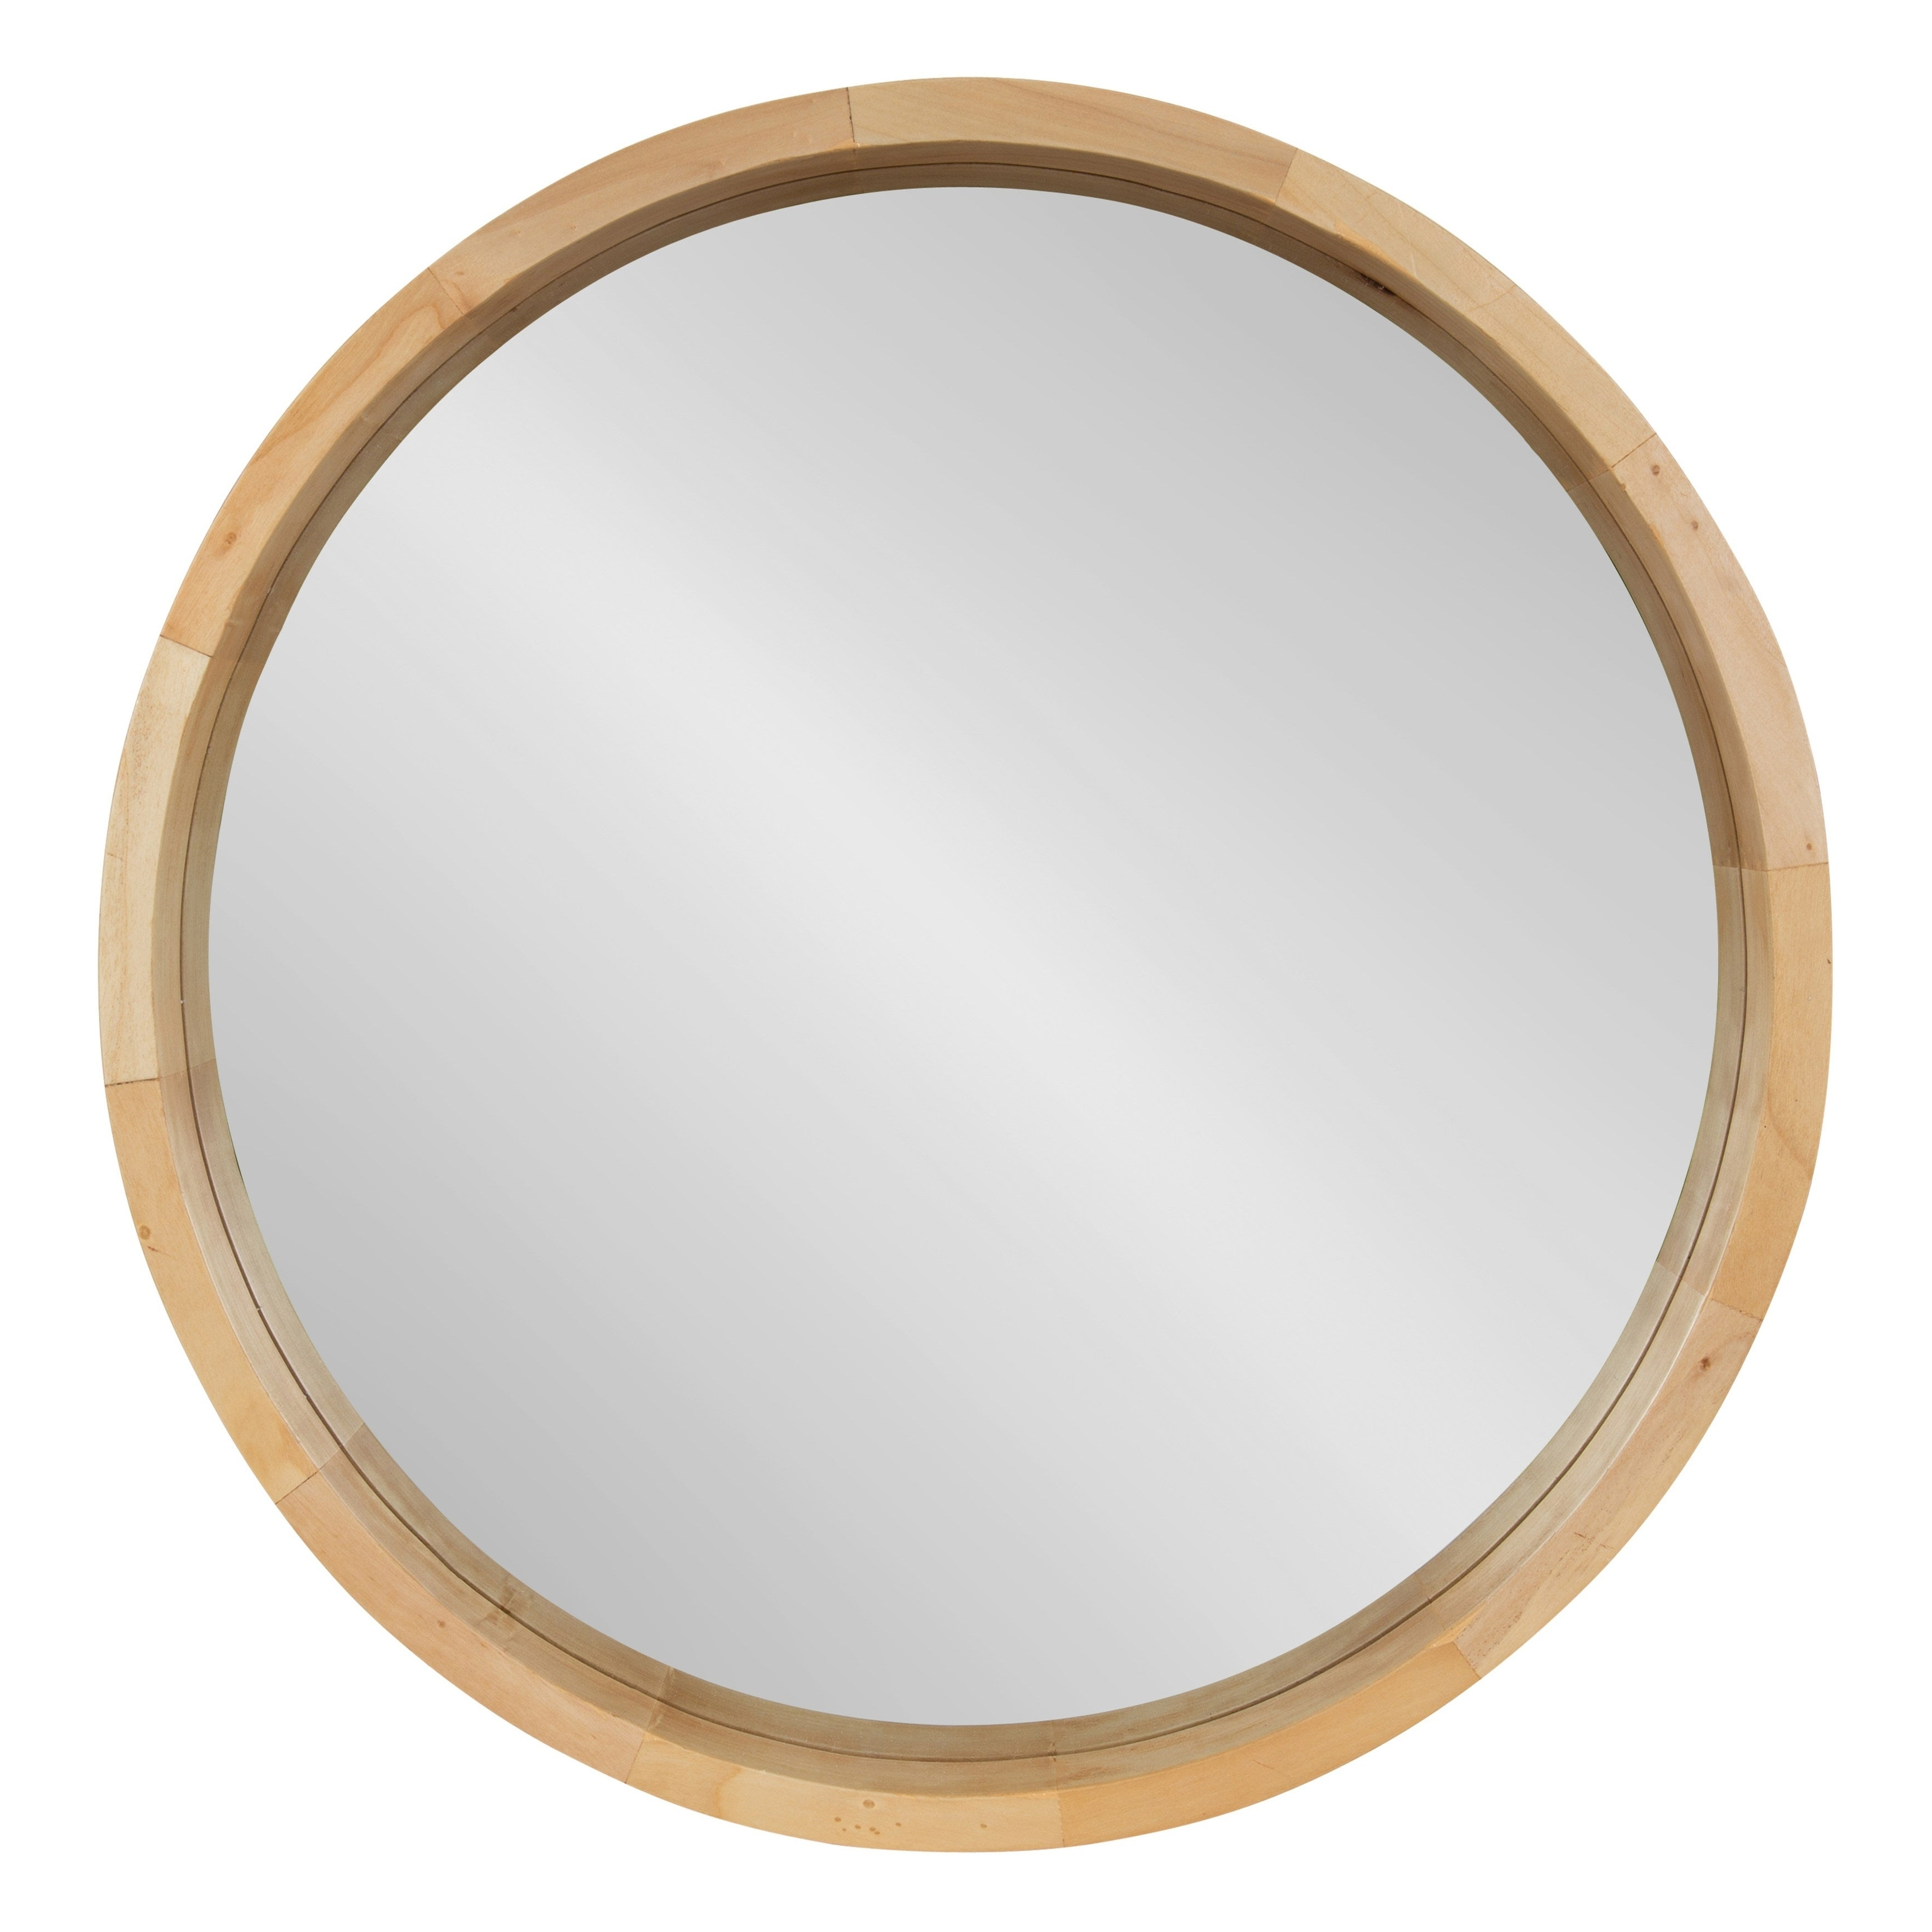 "Round Wood Wall Mirrors With Latest Kate And Laurel Hutton Round Wood Wall Mirror – 22"" Diameter (View 12 of 20)"